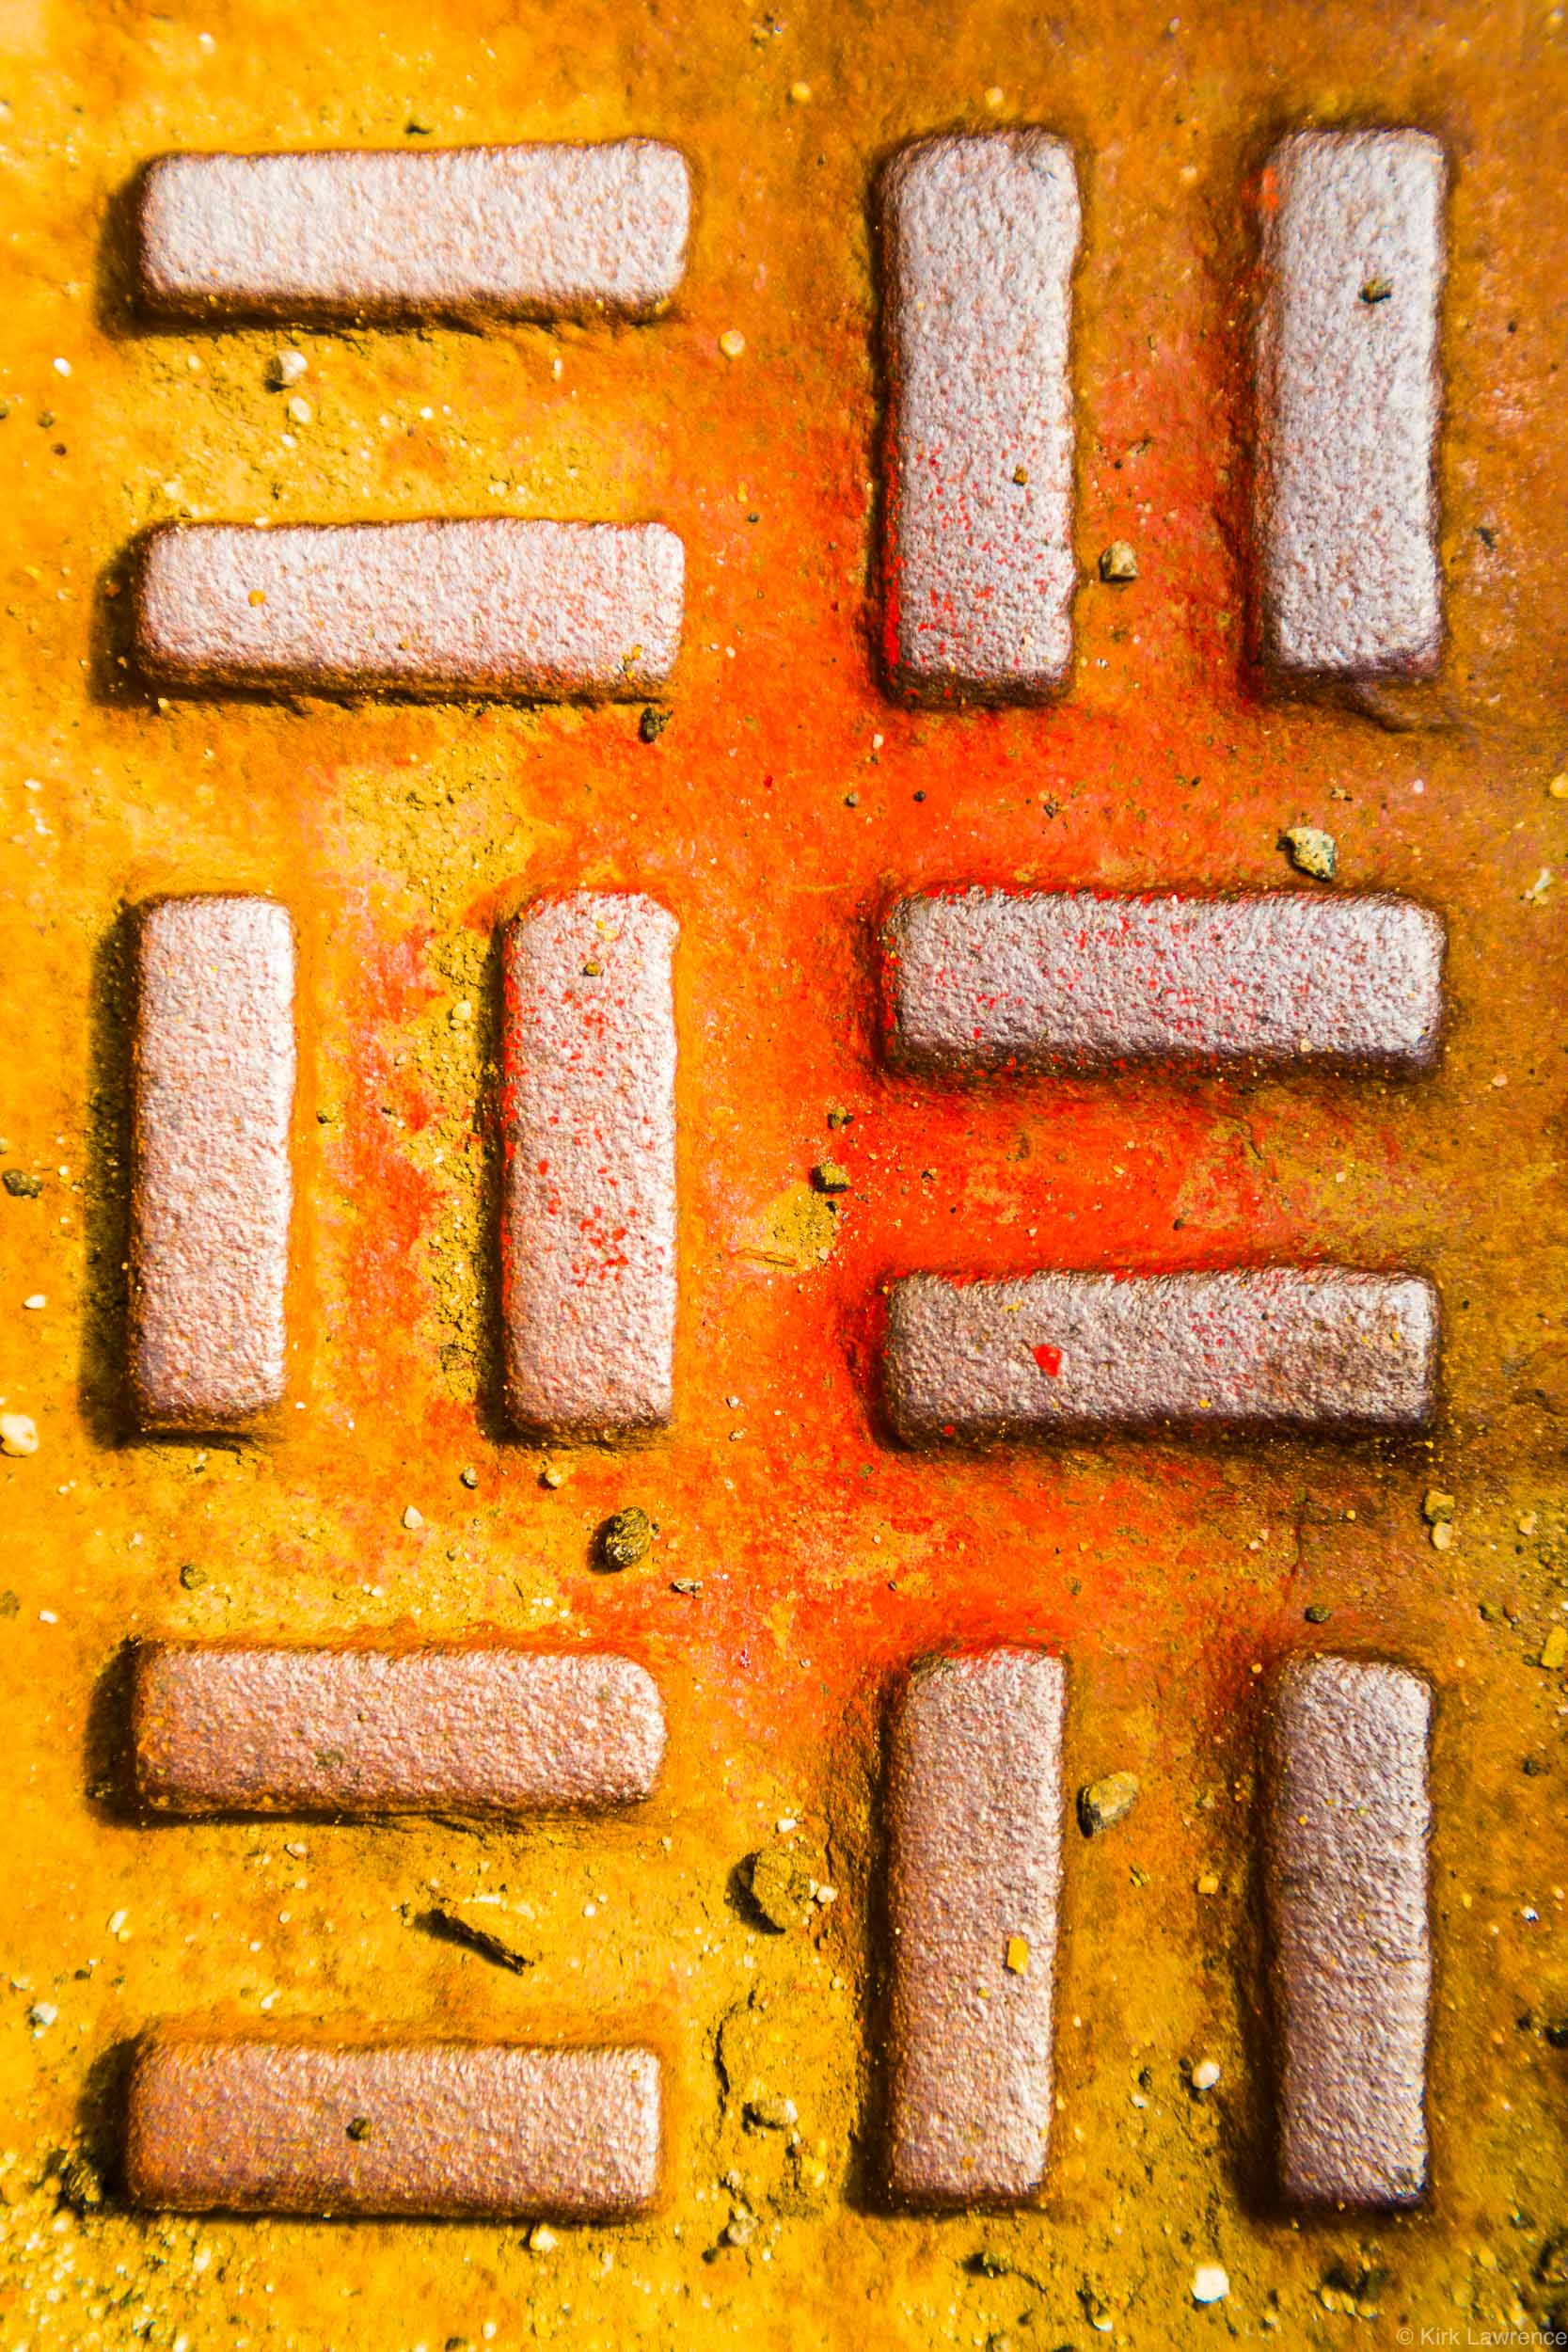 geometric_street_grate_yellow_orange.jpg